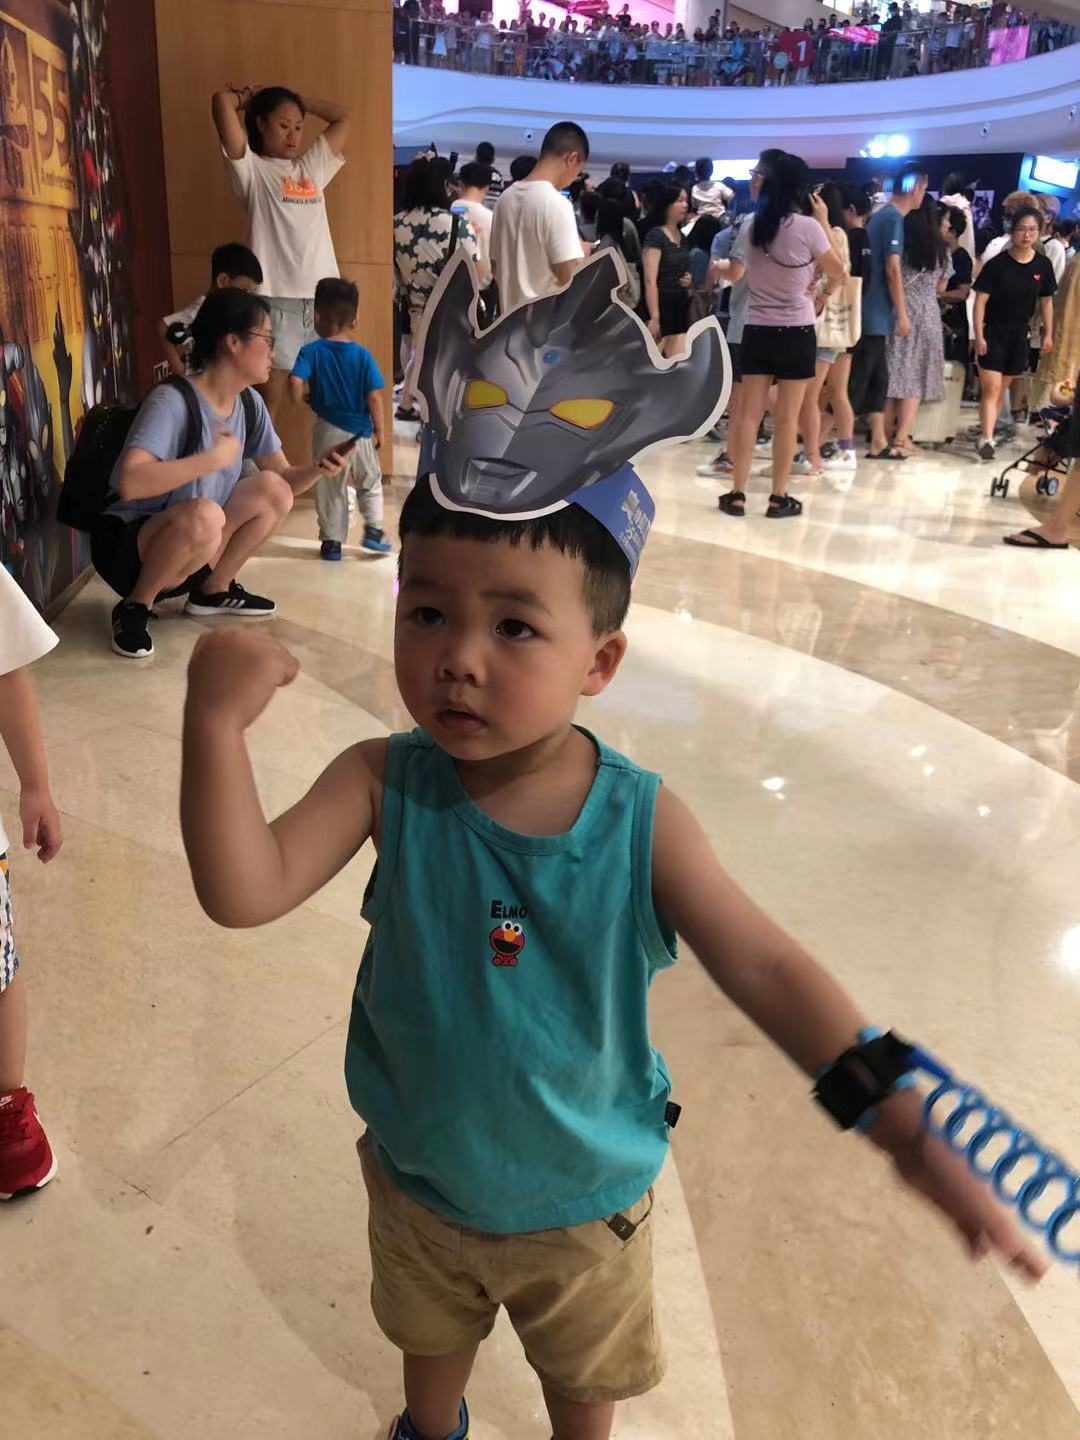 Ethan at the Ultraman 55 year anniversary exhibition in Chongqing.